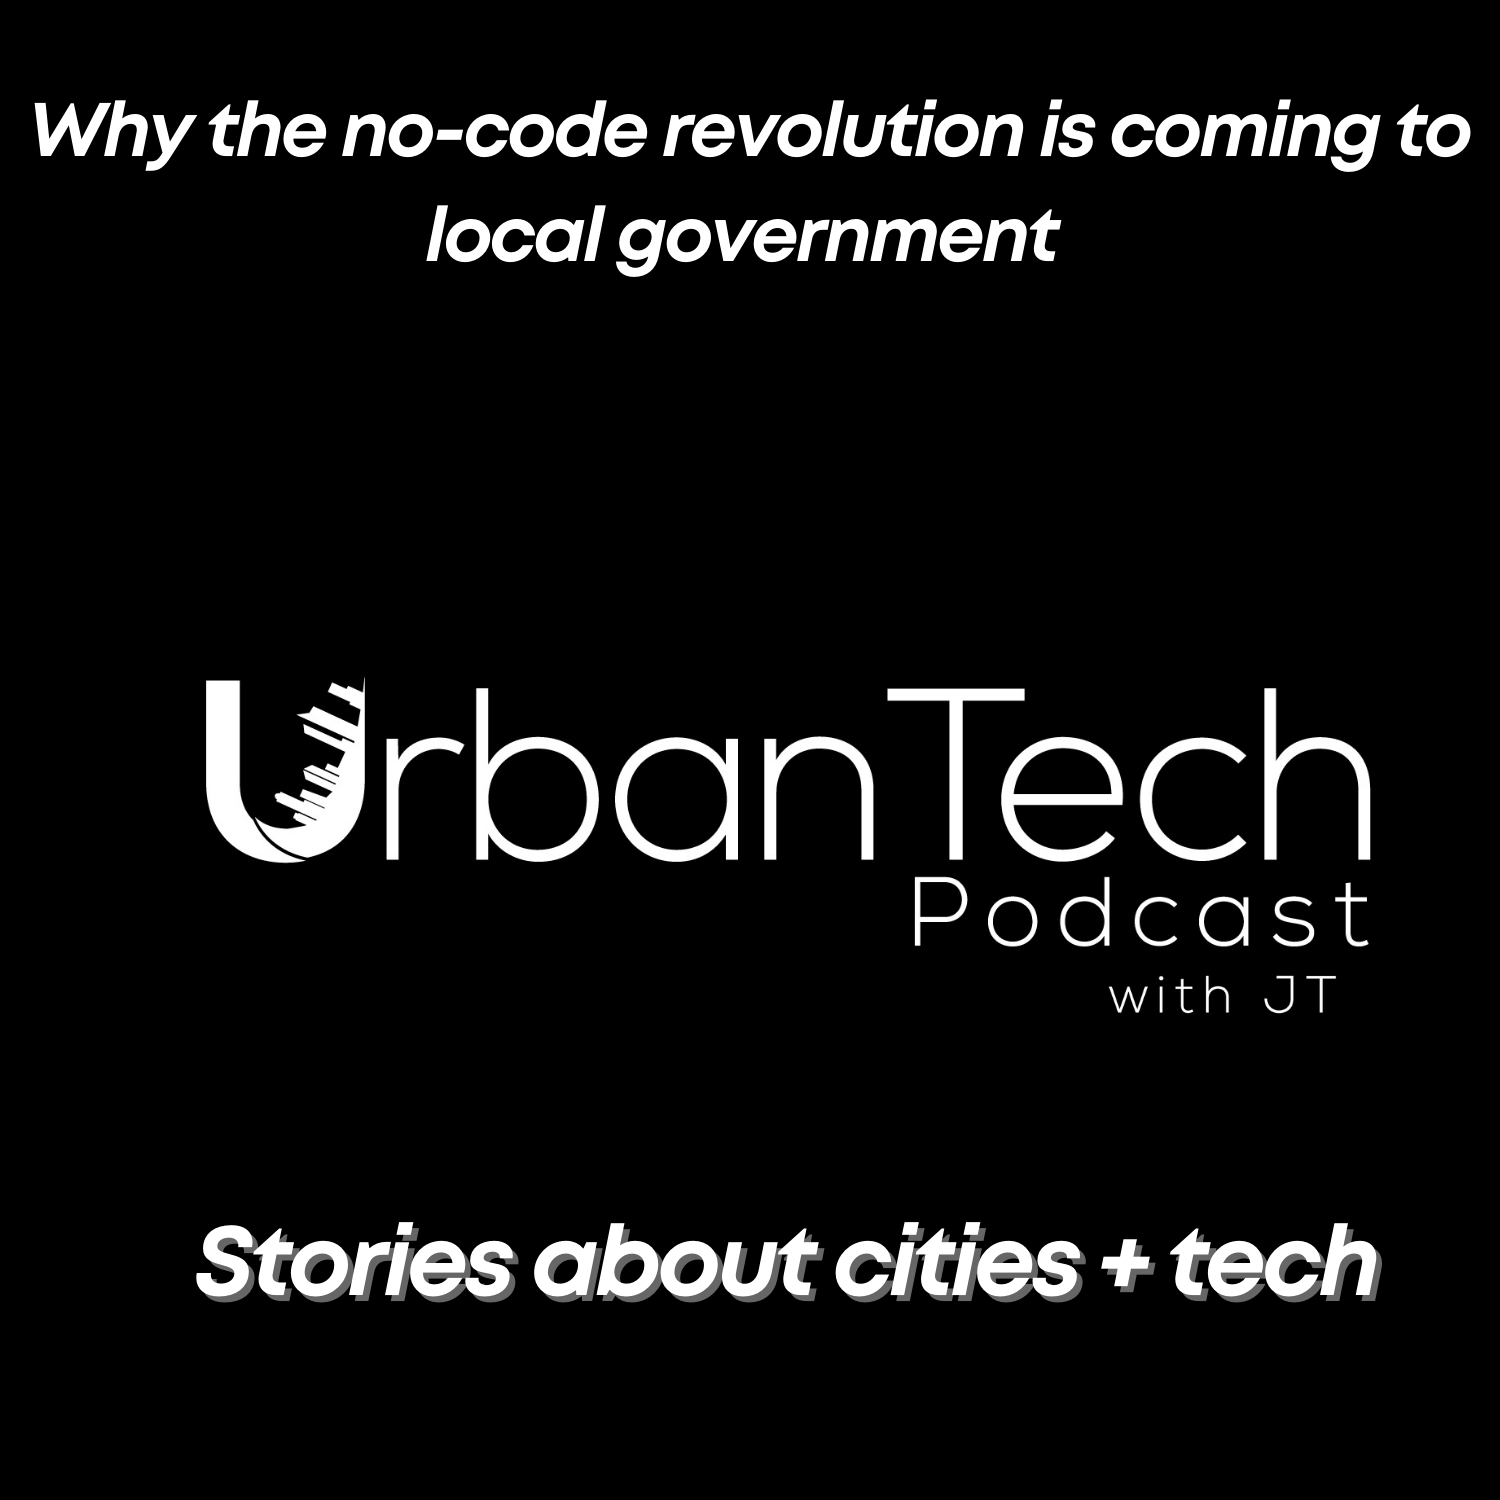 💻 Why the no-code revolution is coming to local government